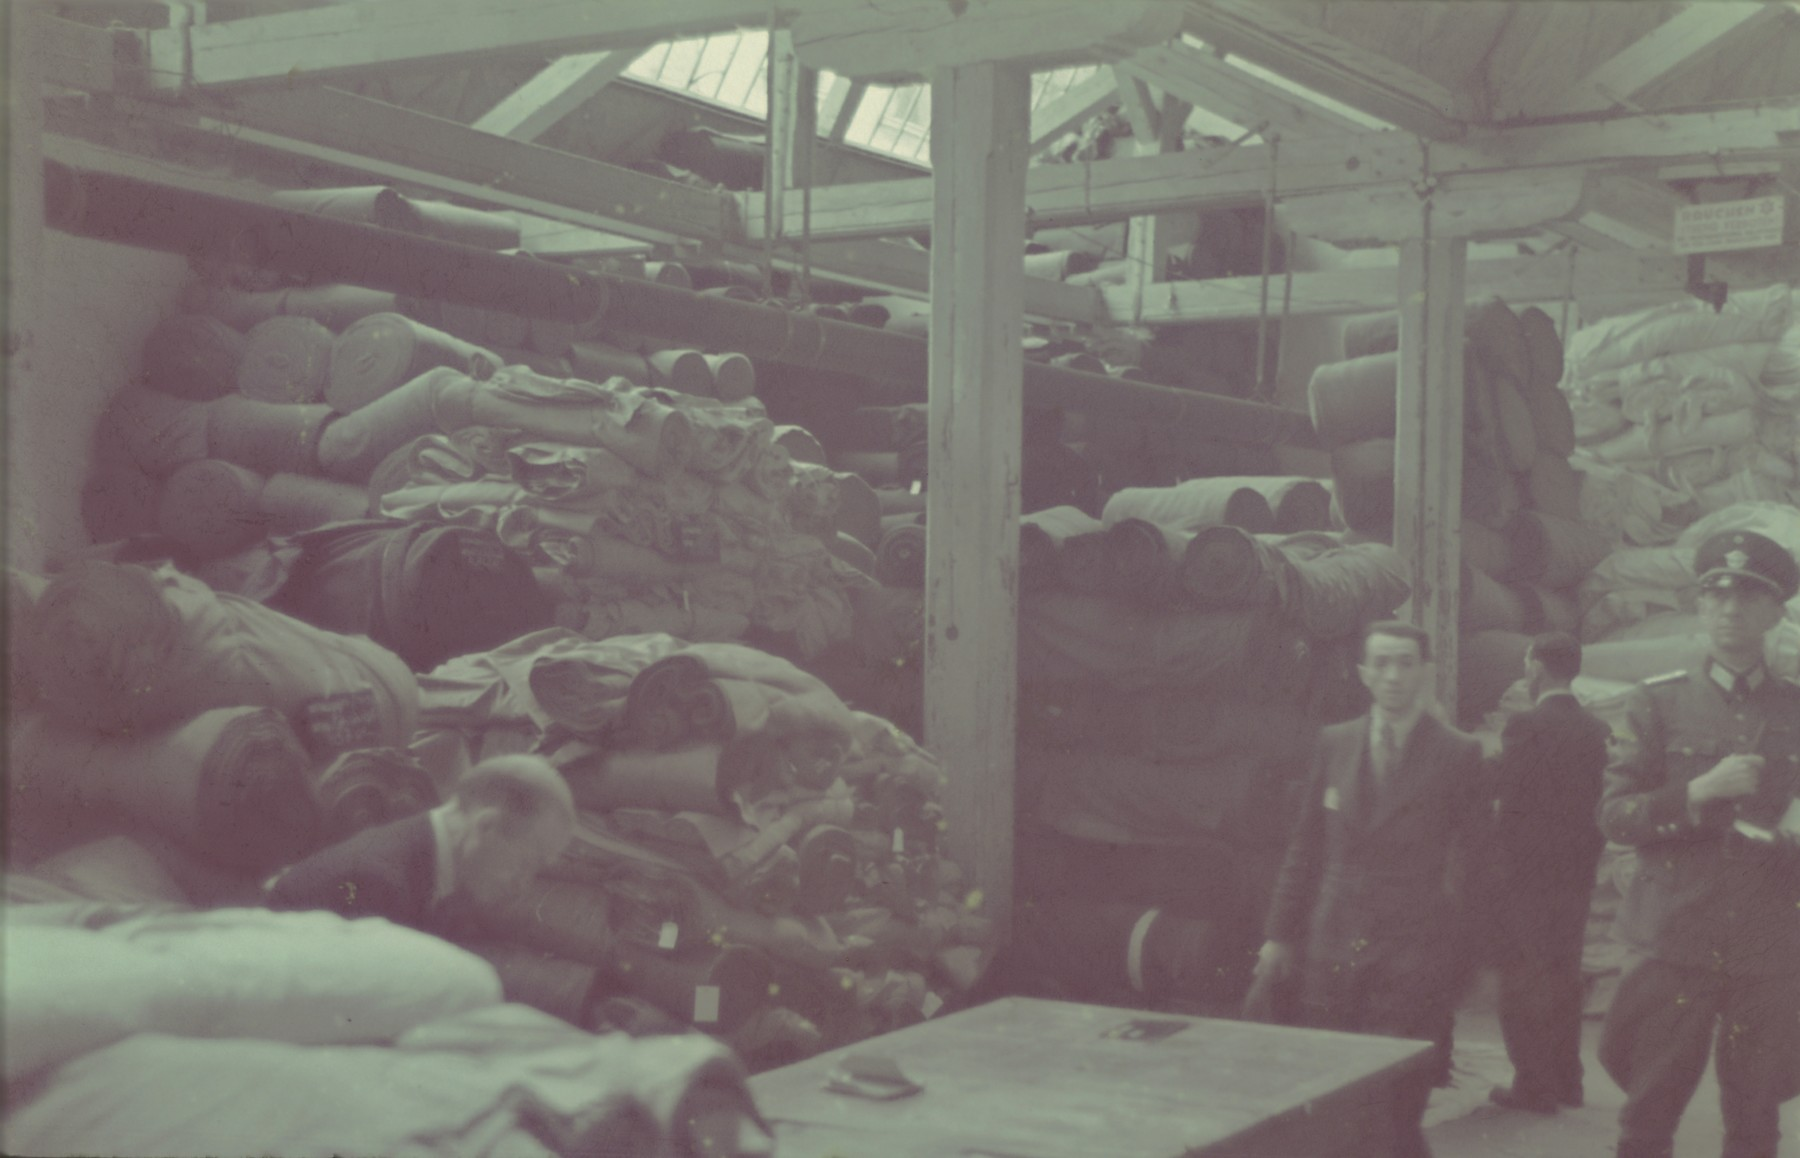 "A German official inspects the textile storeroom in the Lodz ghetto.  Original German caption: ""Getto, Litzmannstadt, Lager fur textilien"" (textile warehouse), #194."